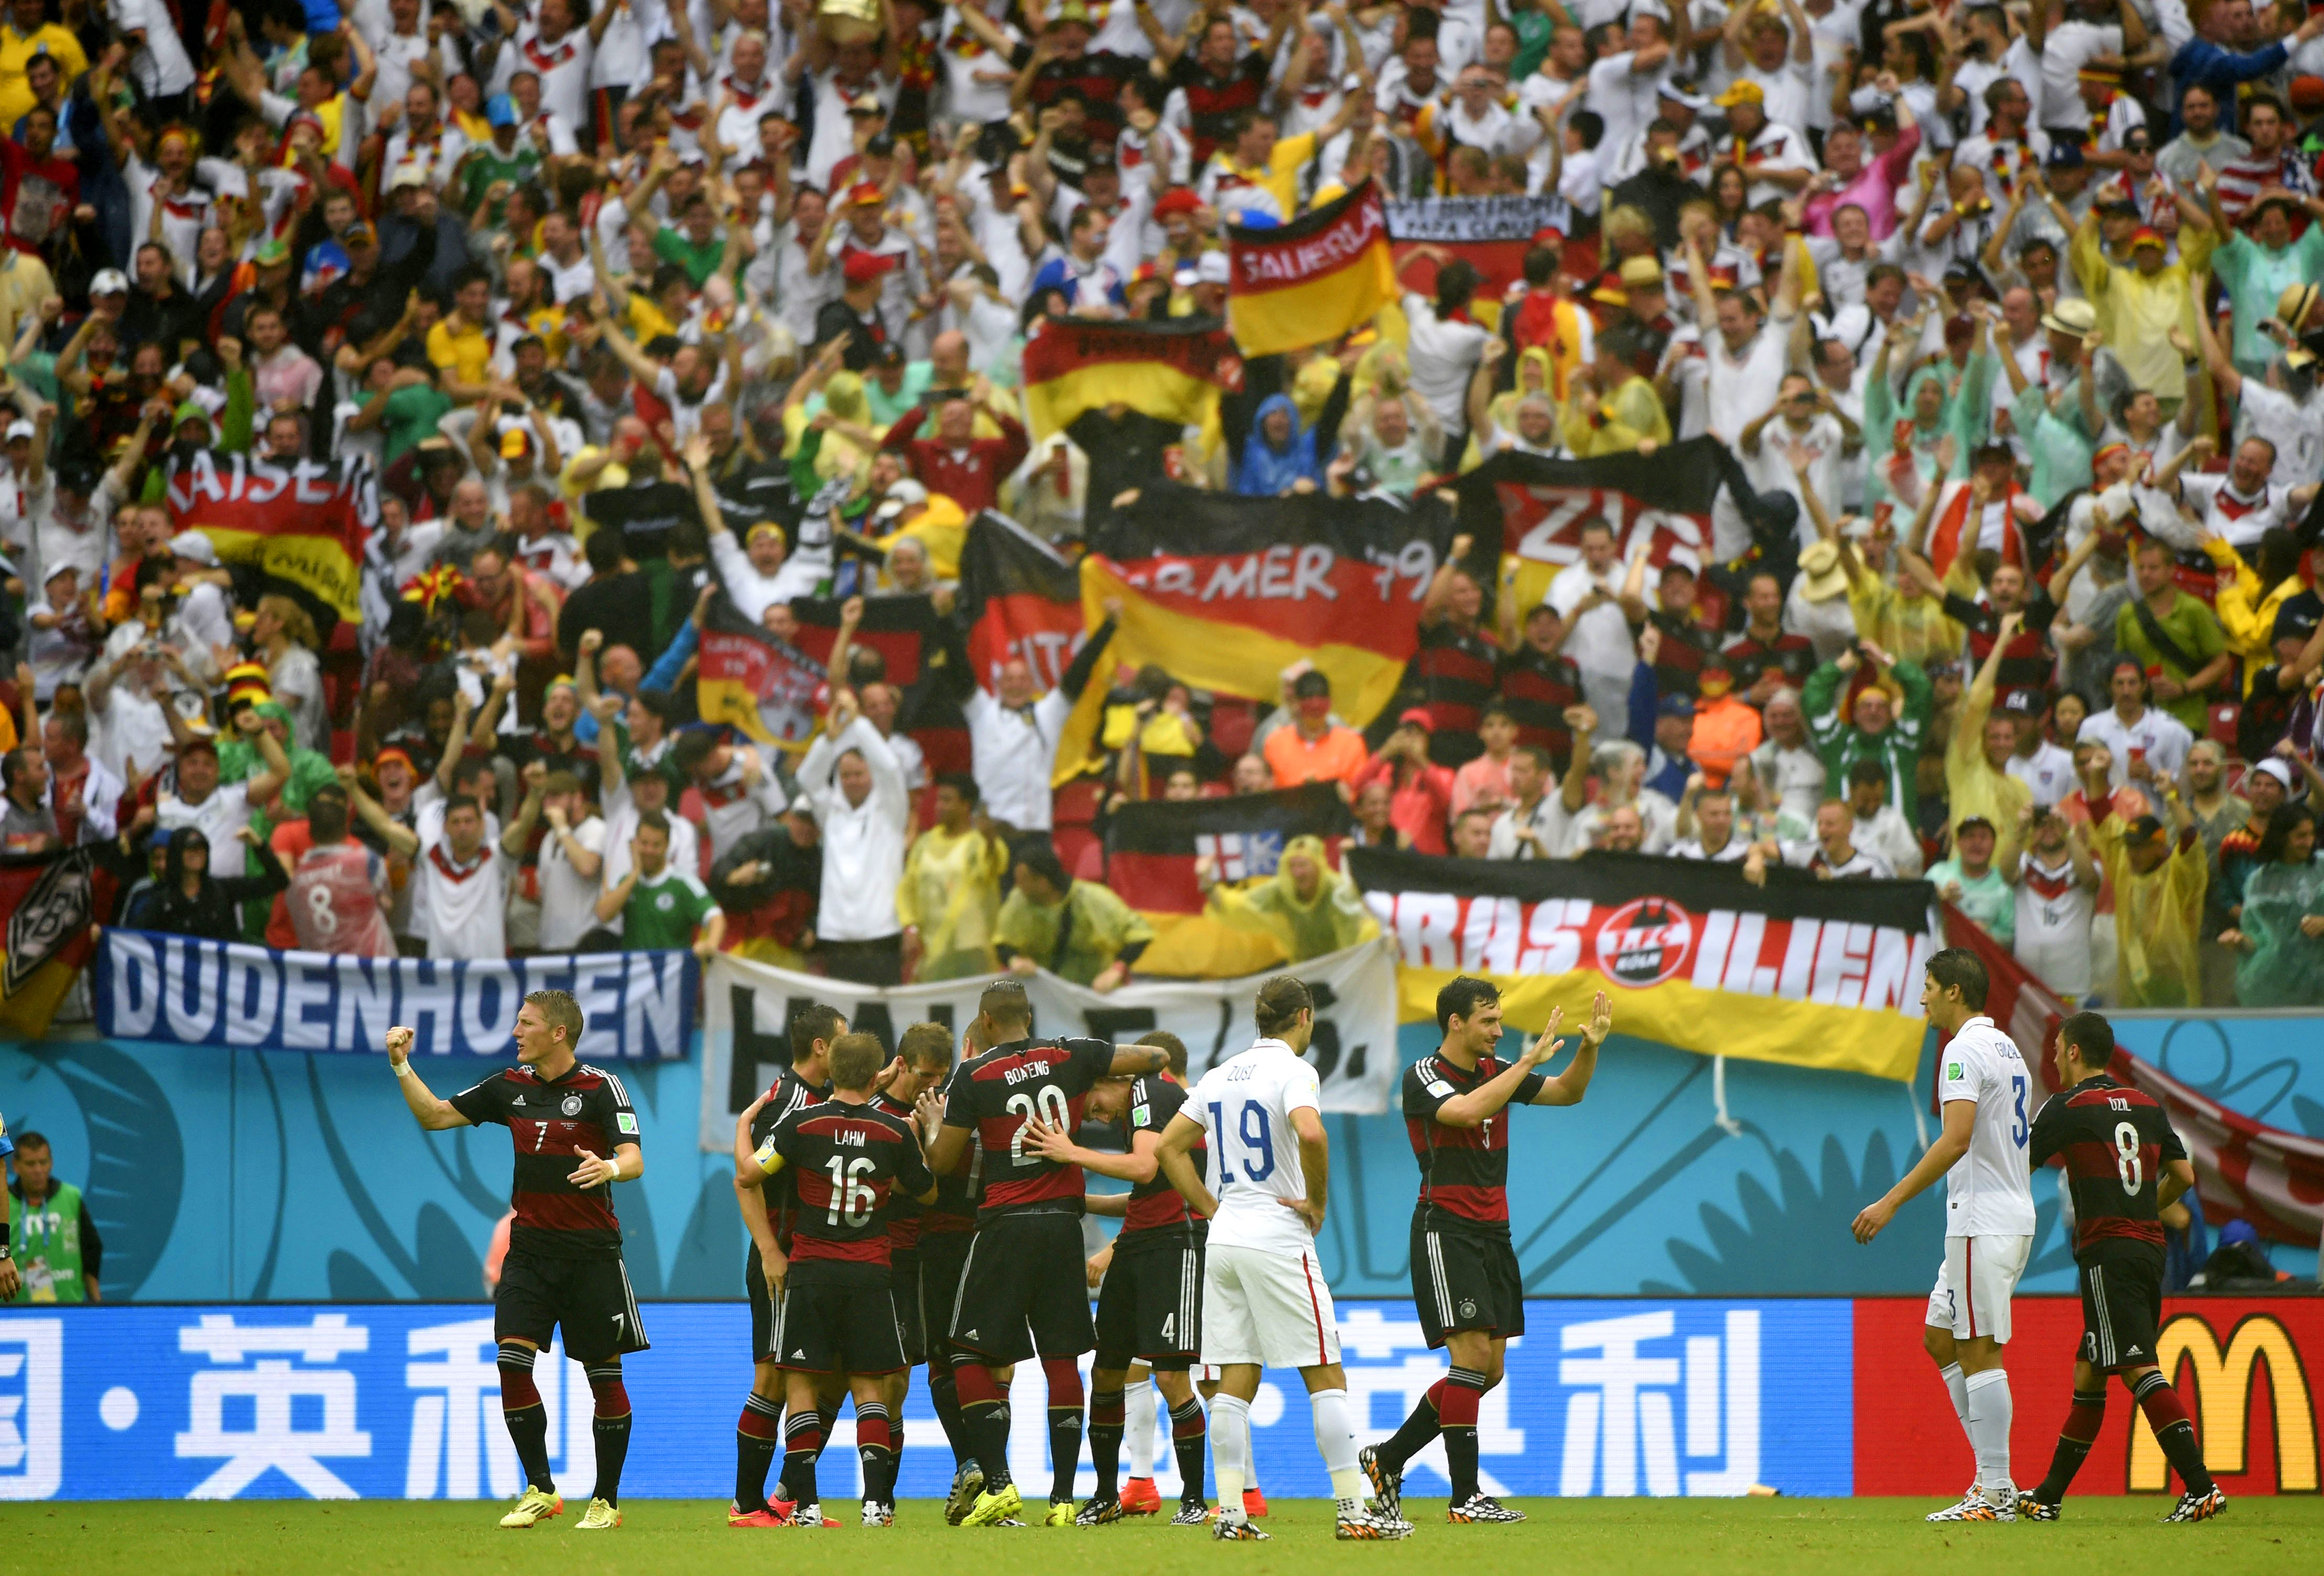 Germany's players celebrate for Thomas Muller's goal at the Arena Pernambuco Stadium in Recife, Brazil, on June 26, 2014.